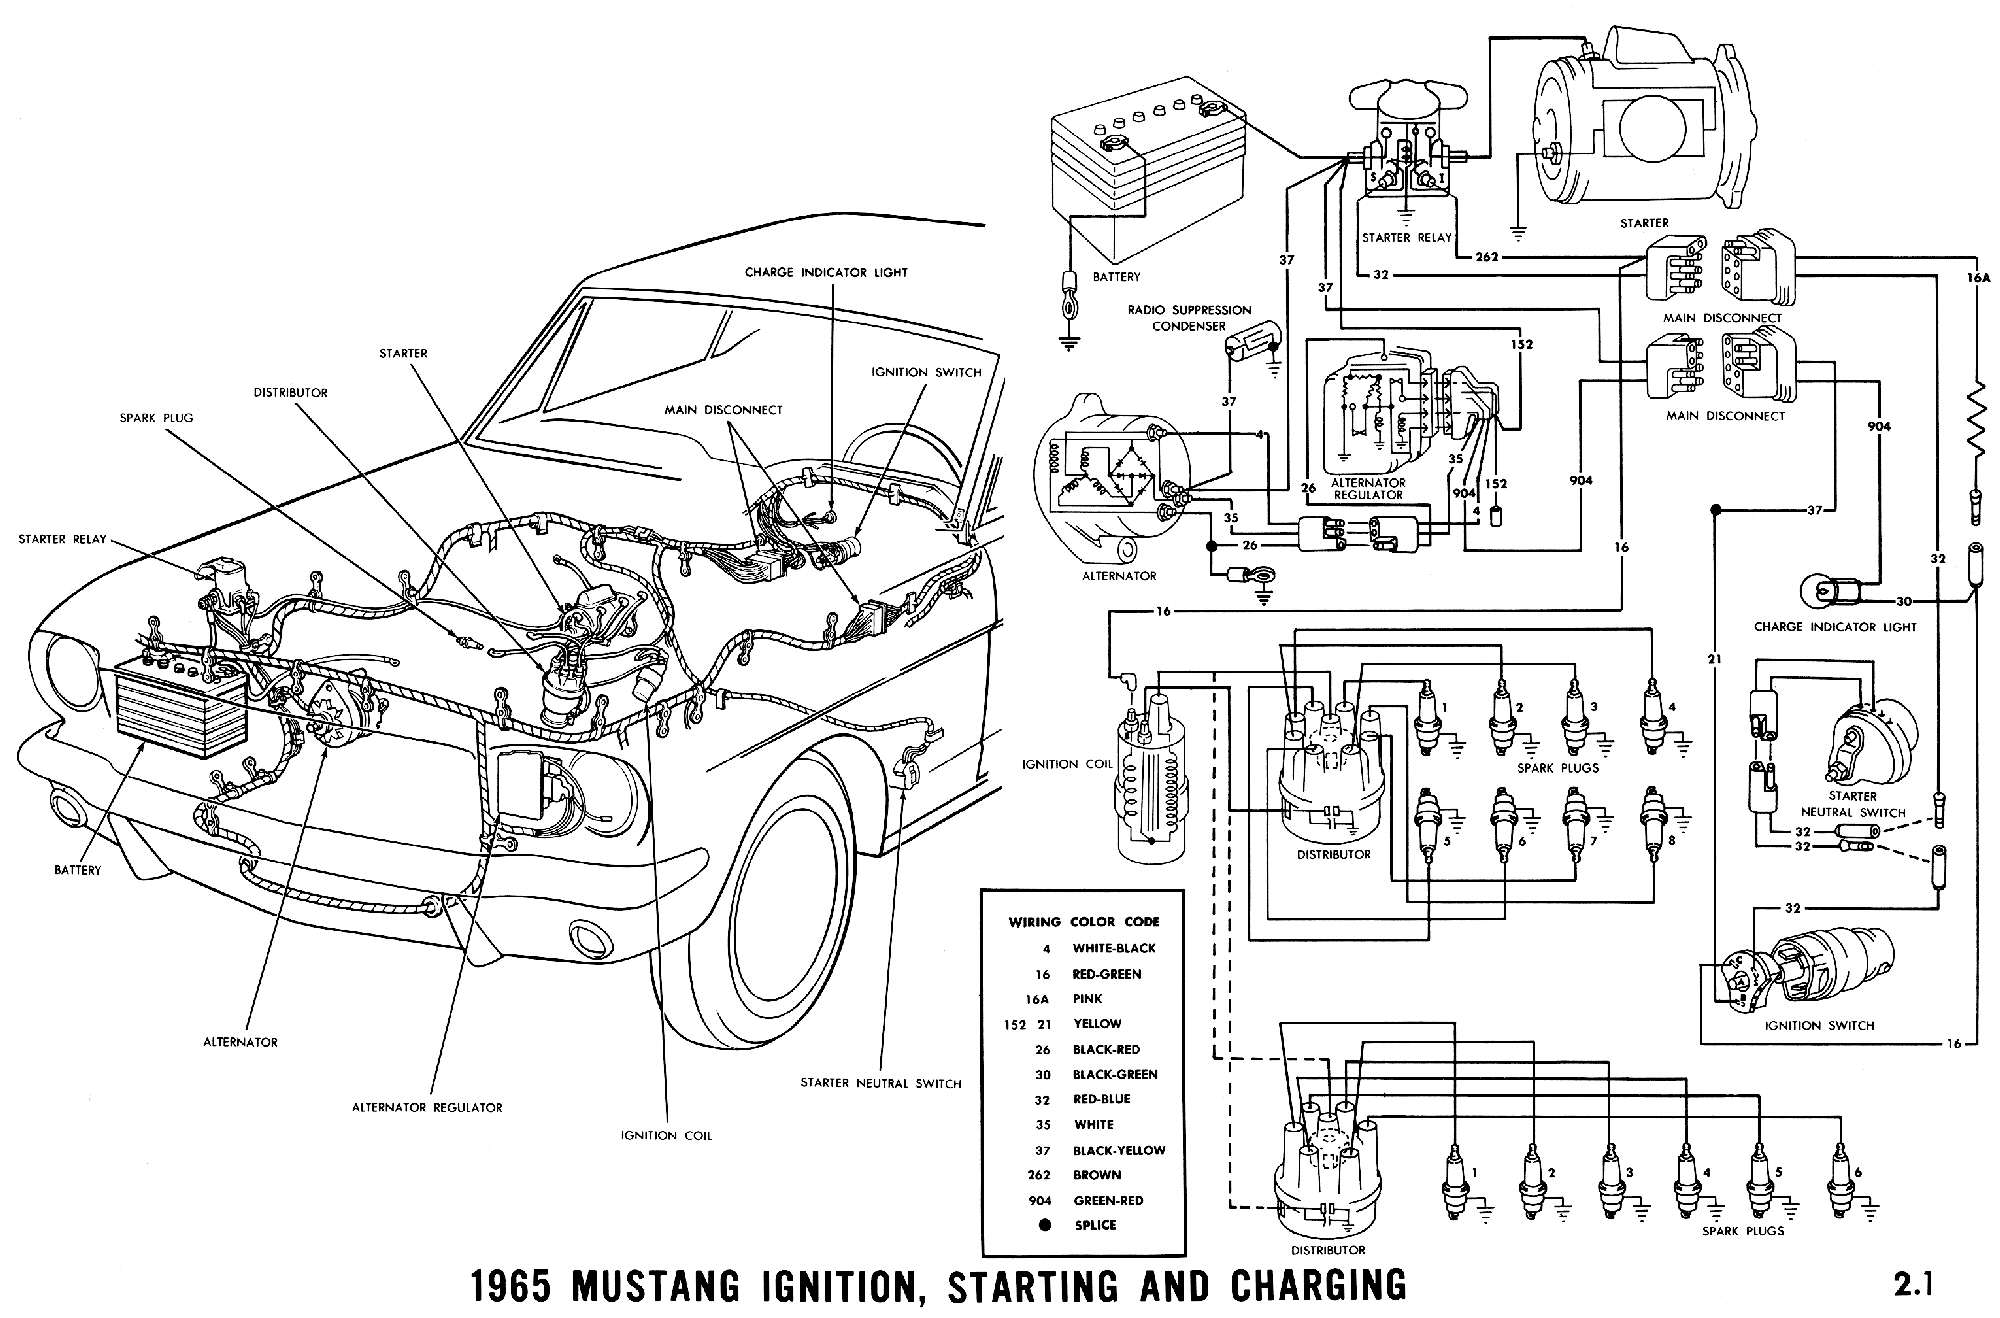 1965 mustang ignition coil wiring diagram 3 wire circuit diagrams average joe restoration